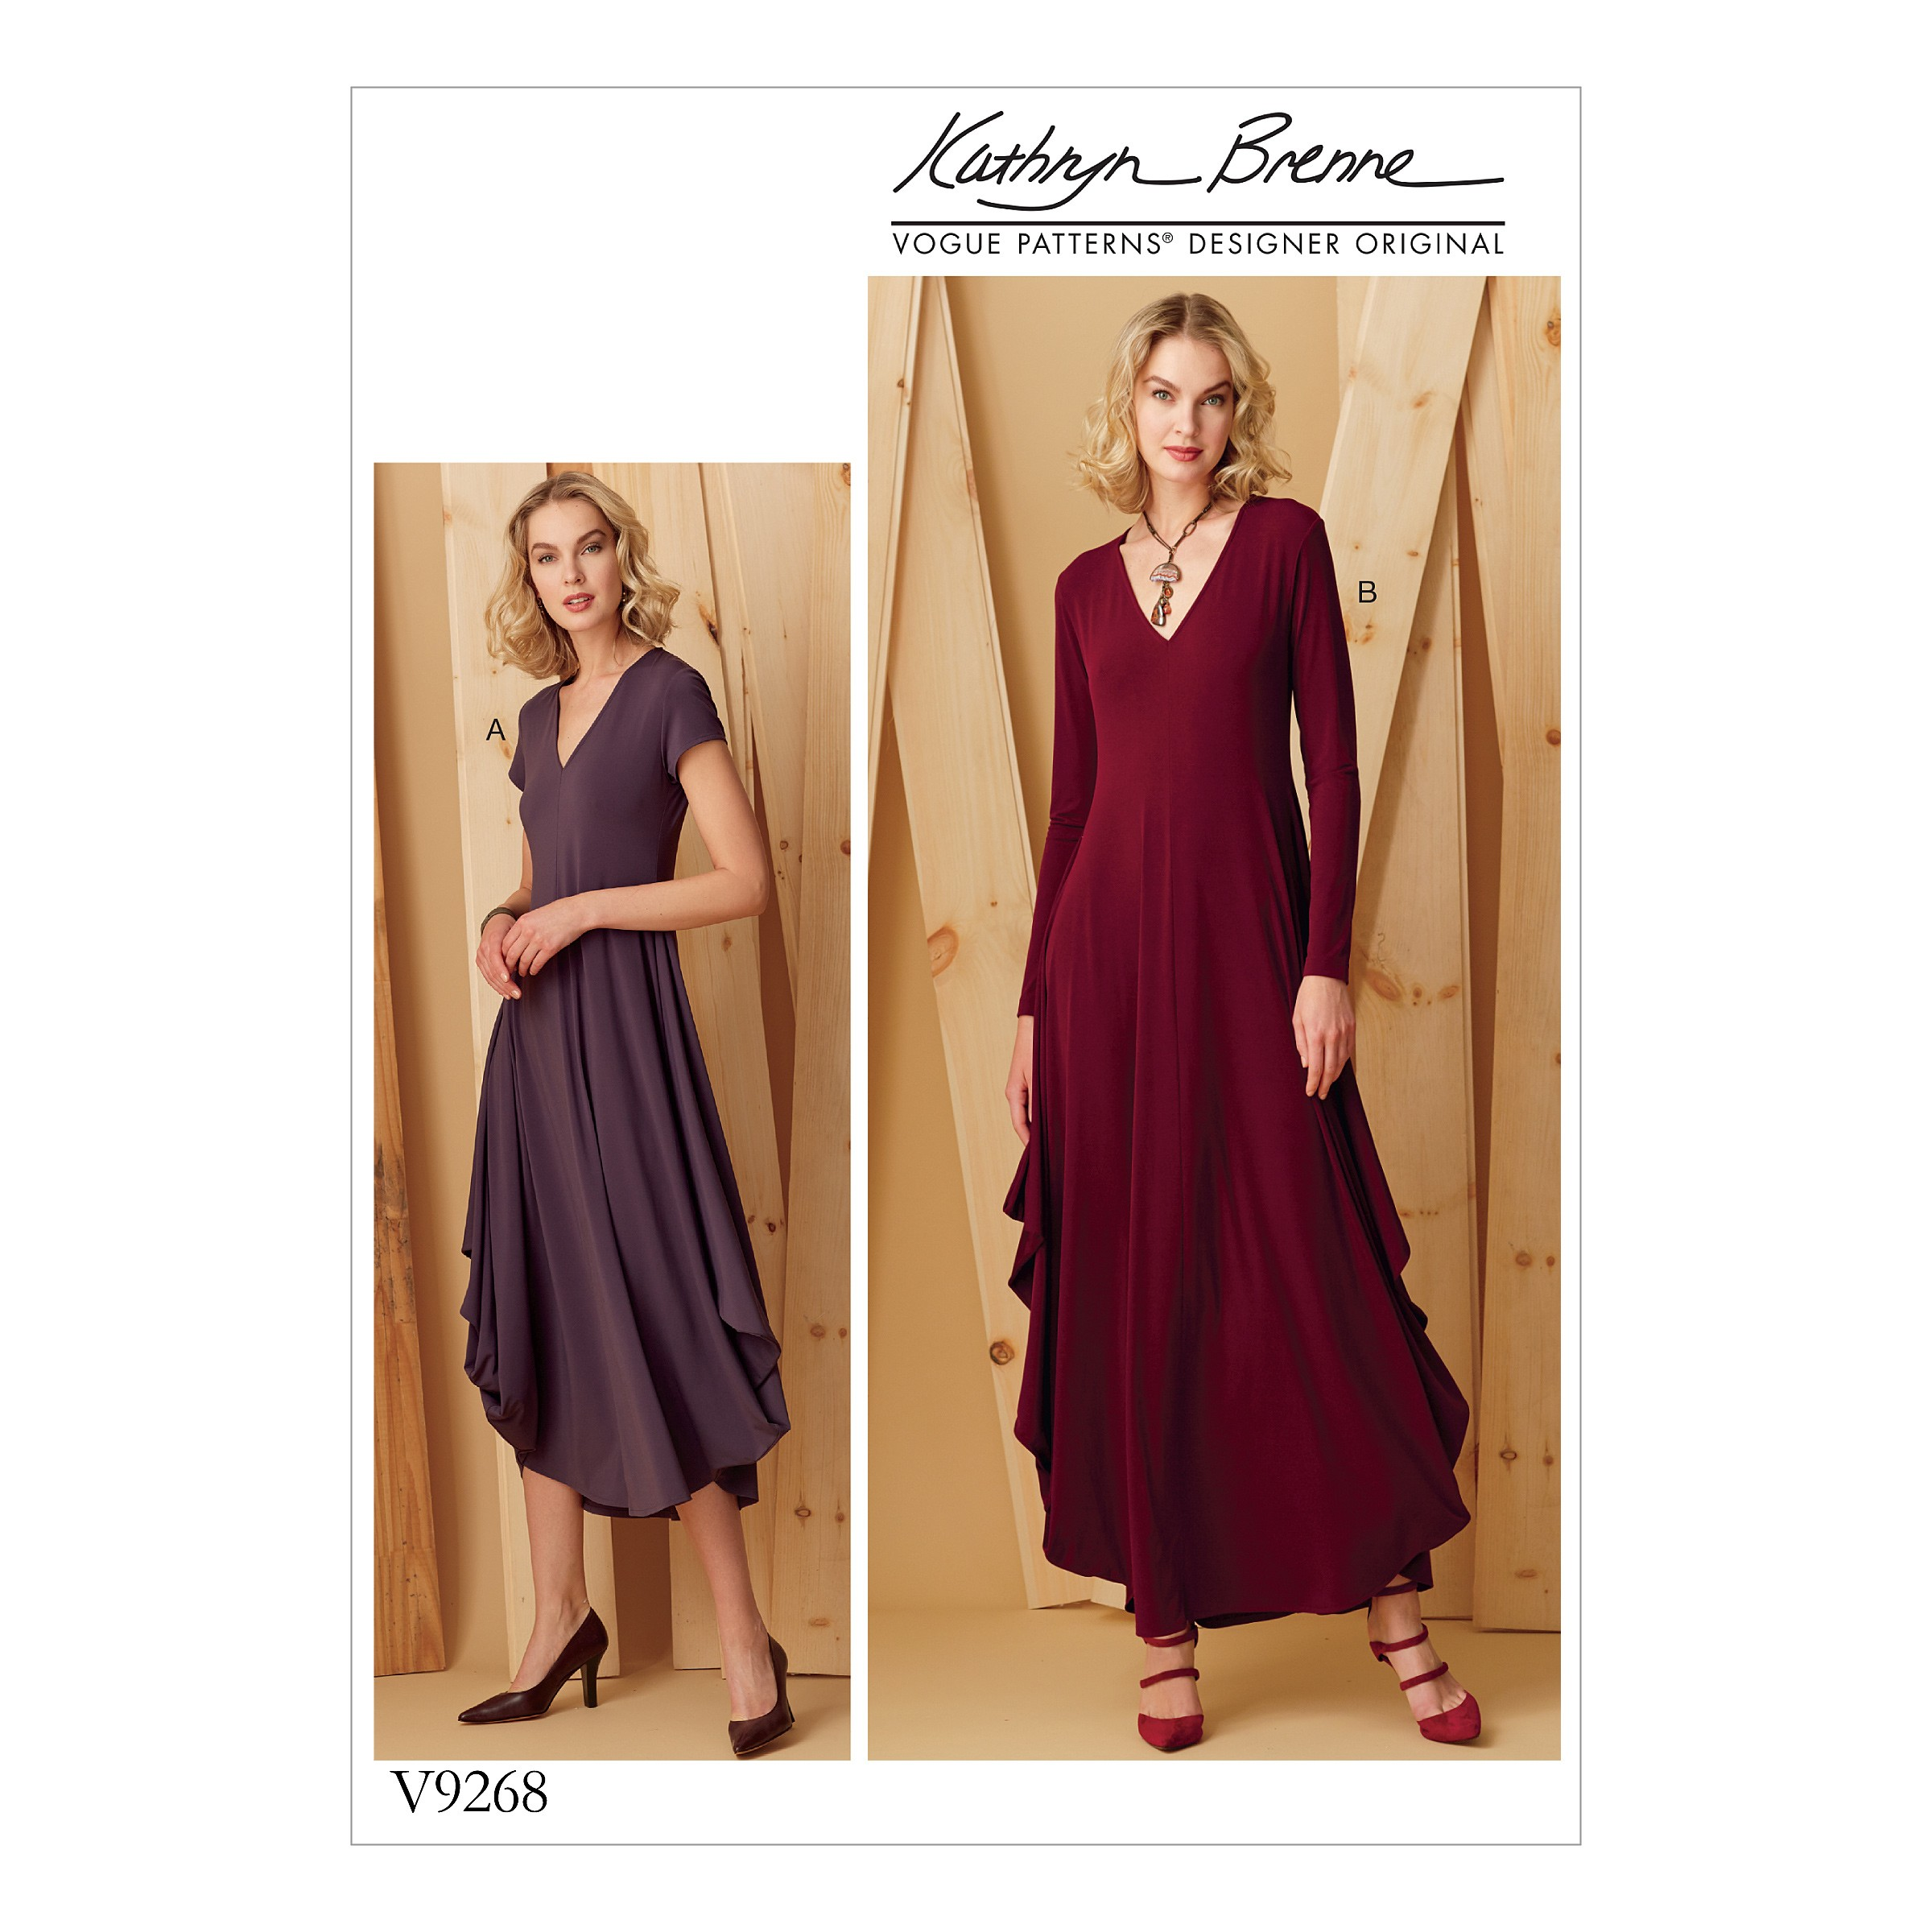 Vogue Sewing Pattern V9268 Women's Knit V-Neck & Draped Dresses